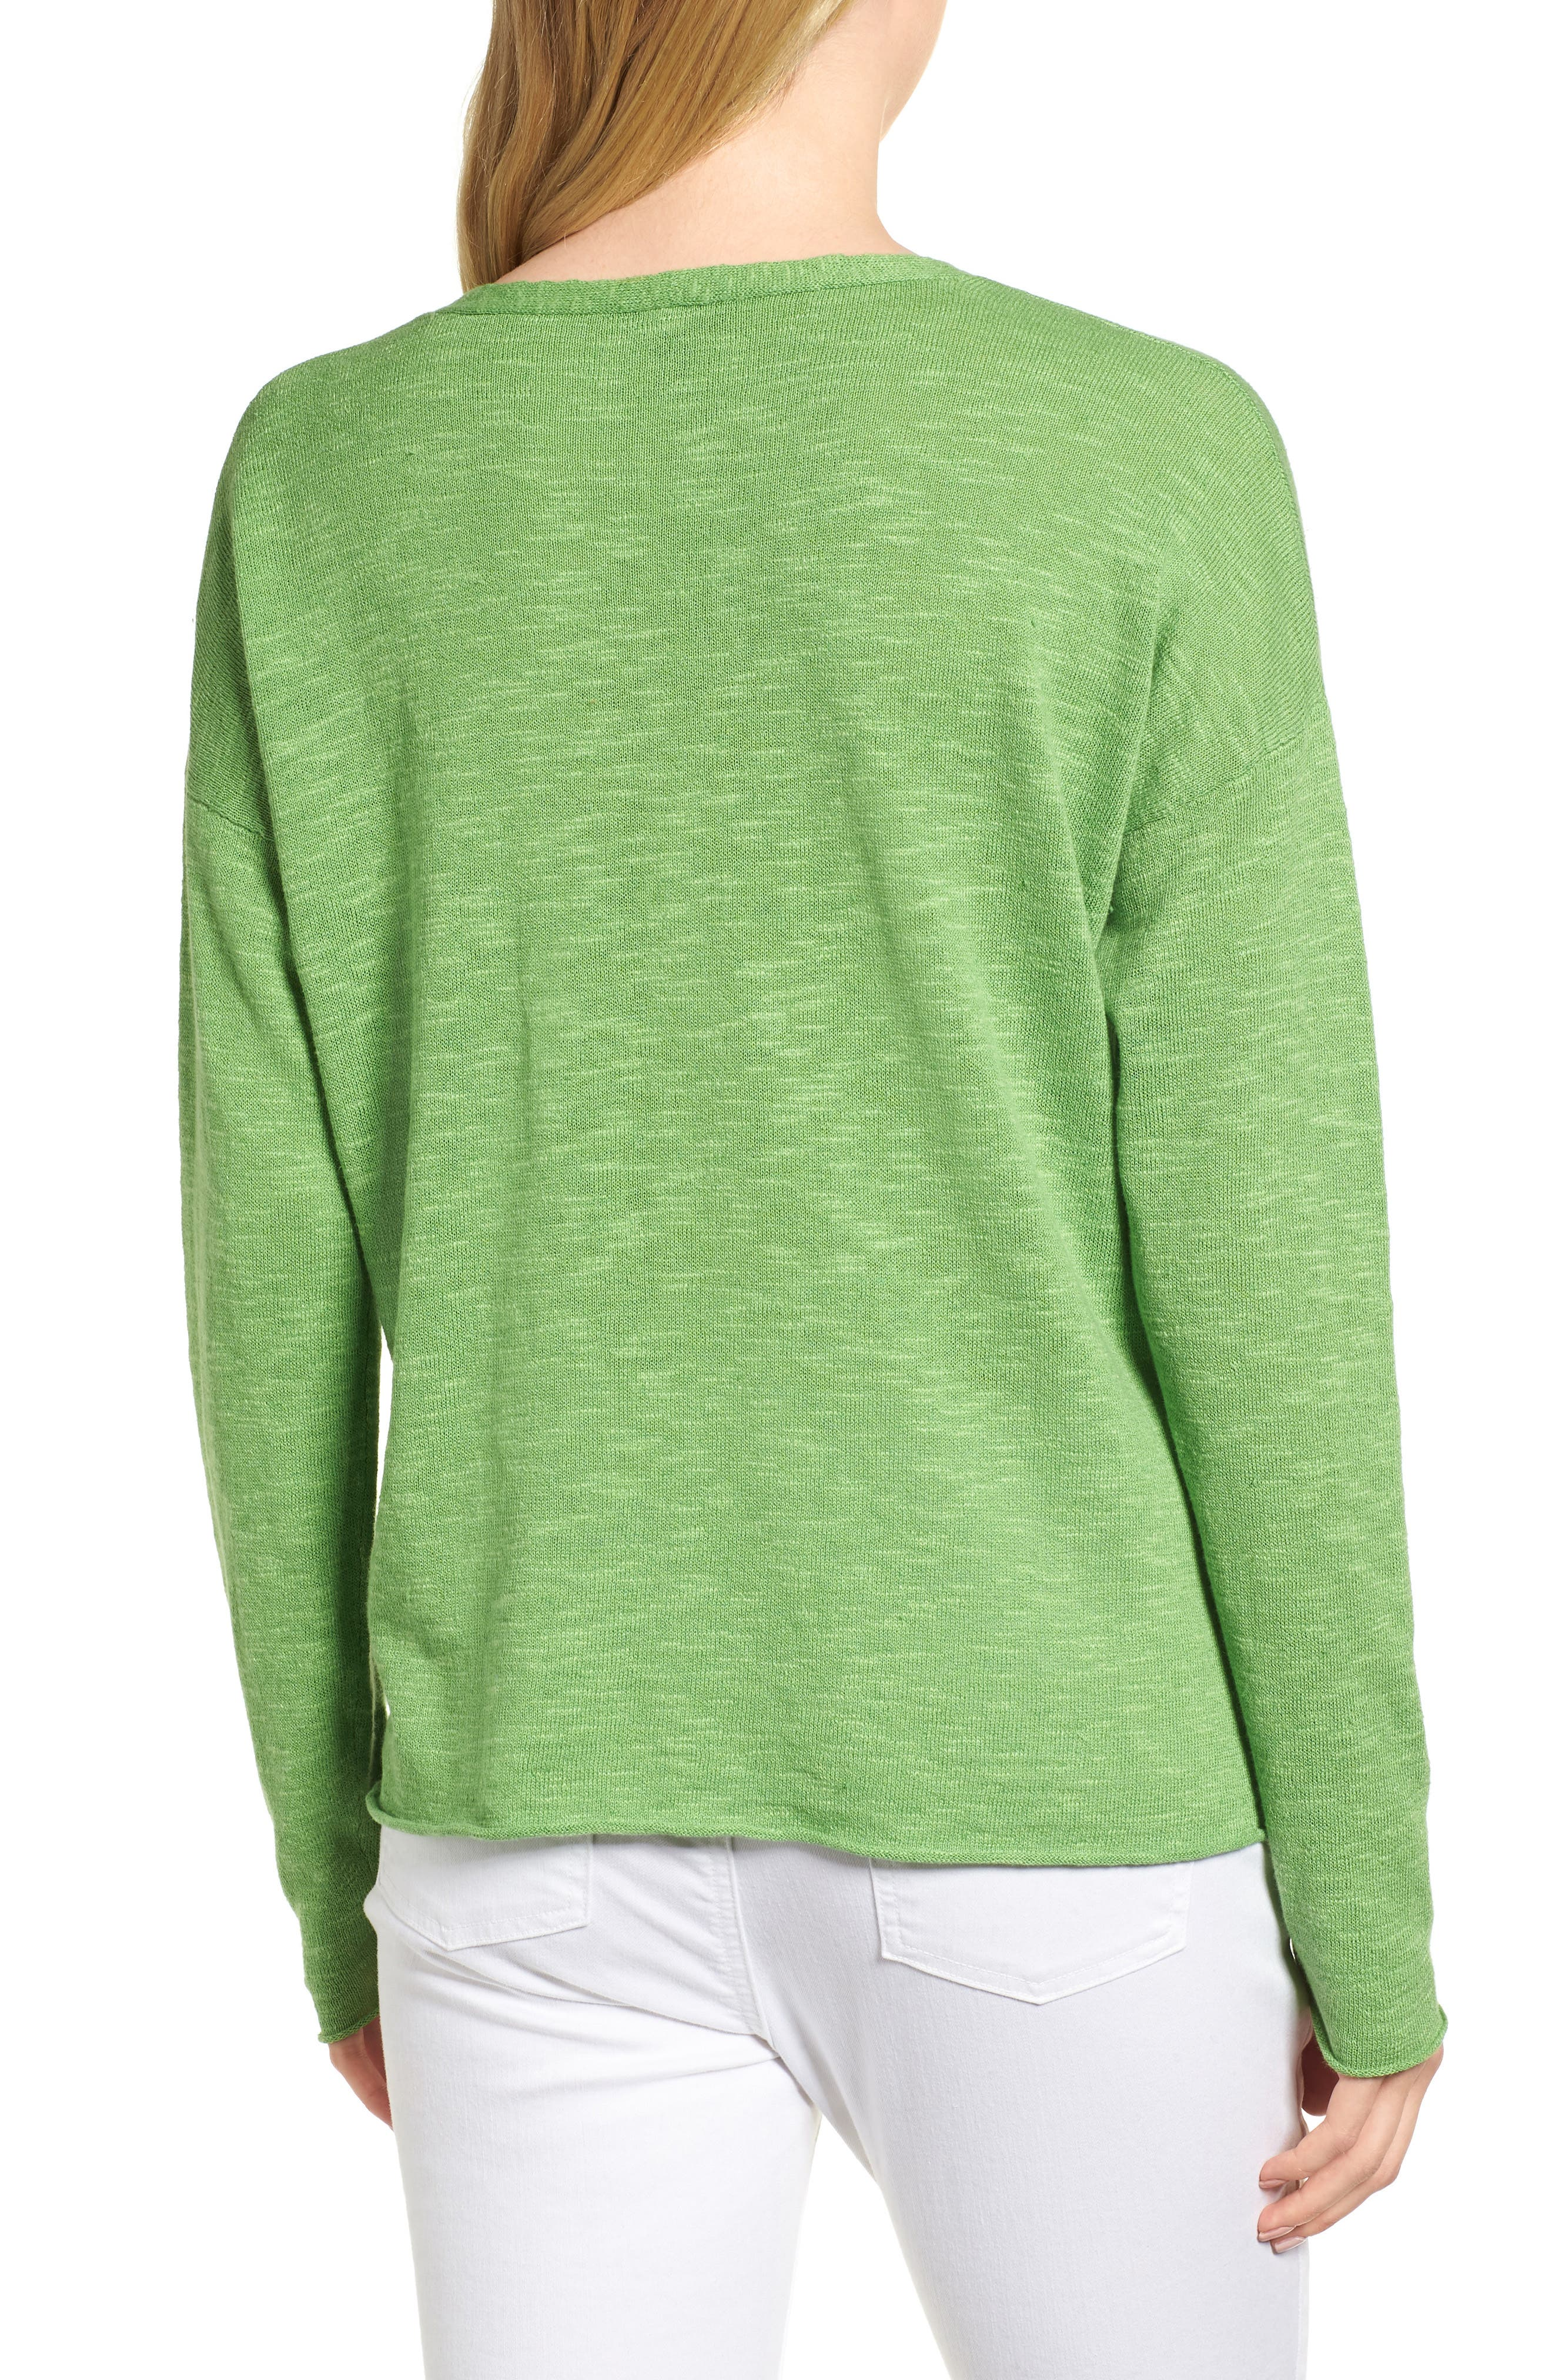 Boxy Organic Linen & Cotton Sweater,                             Alternate thumbnail 7, color,